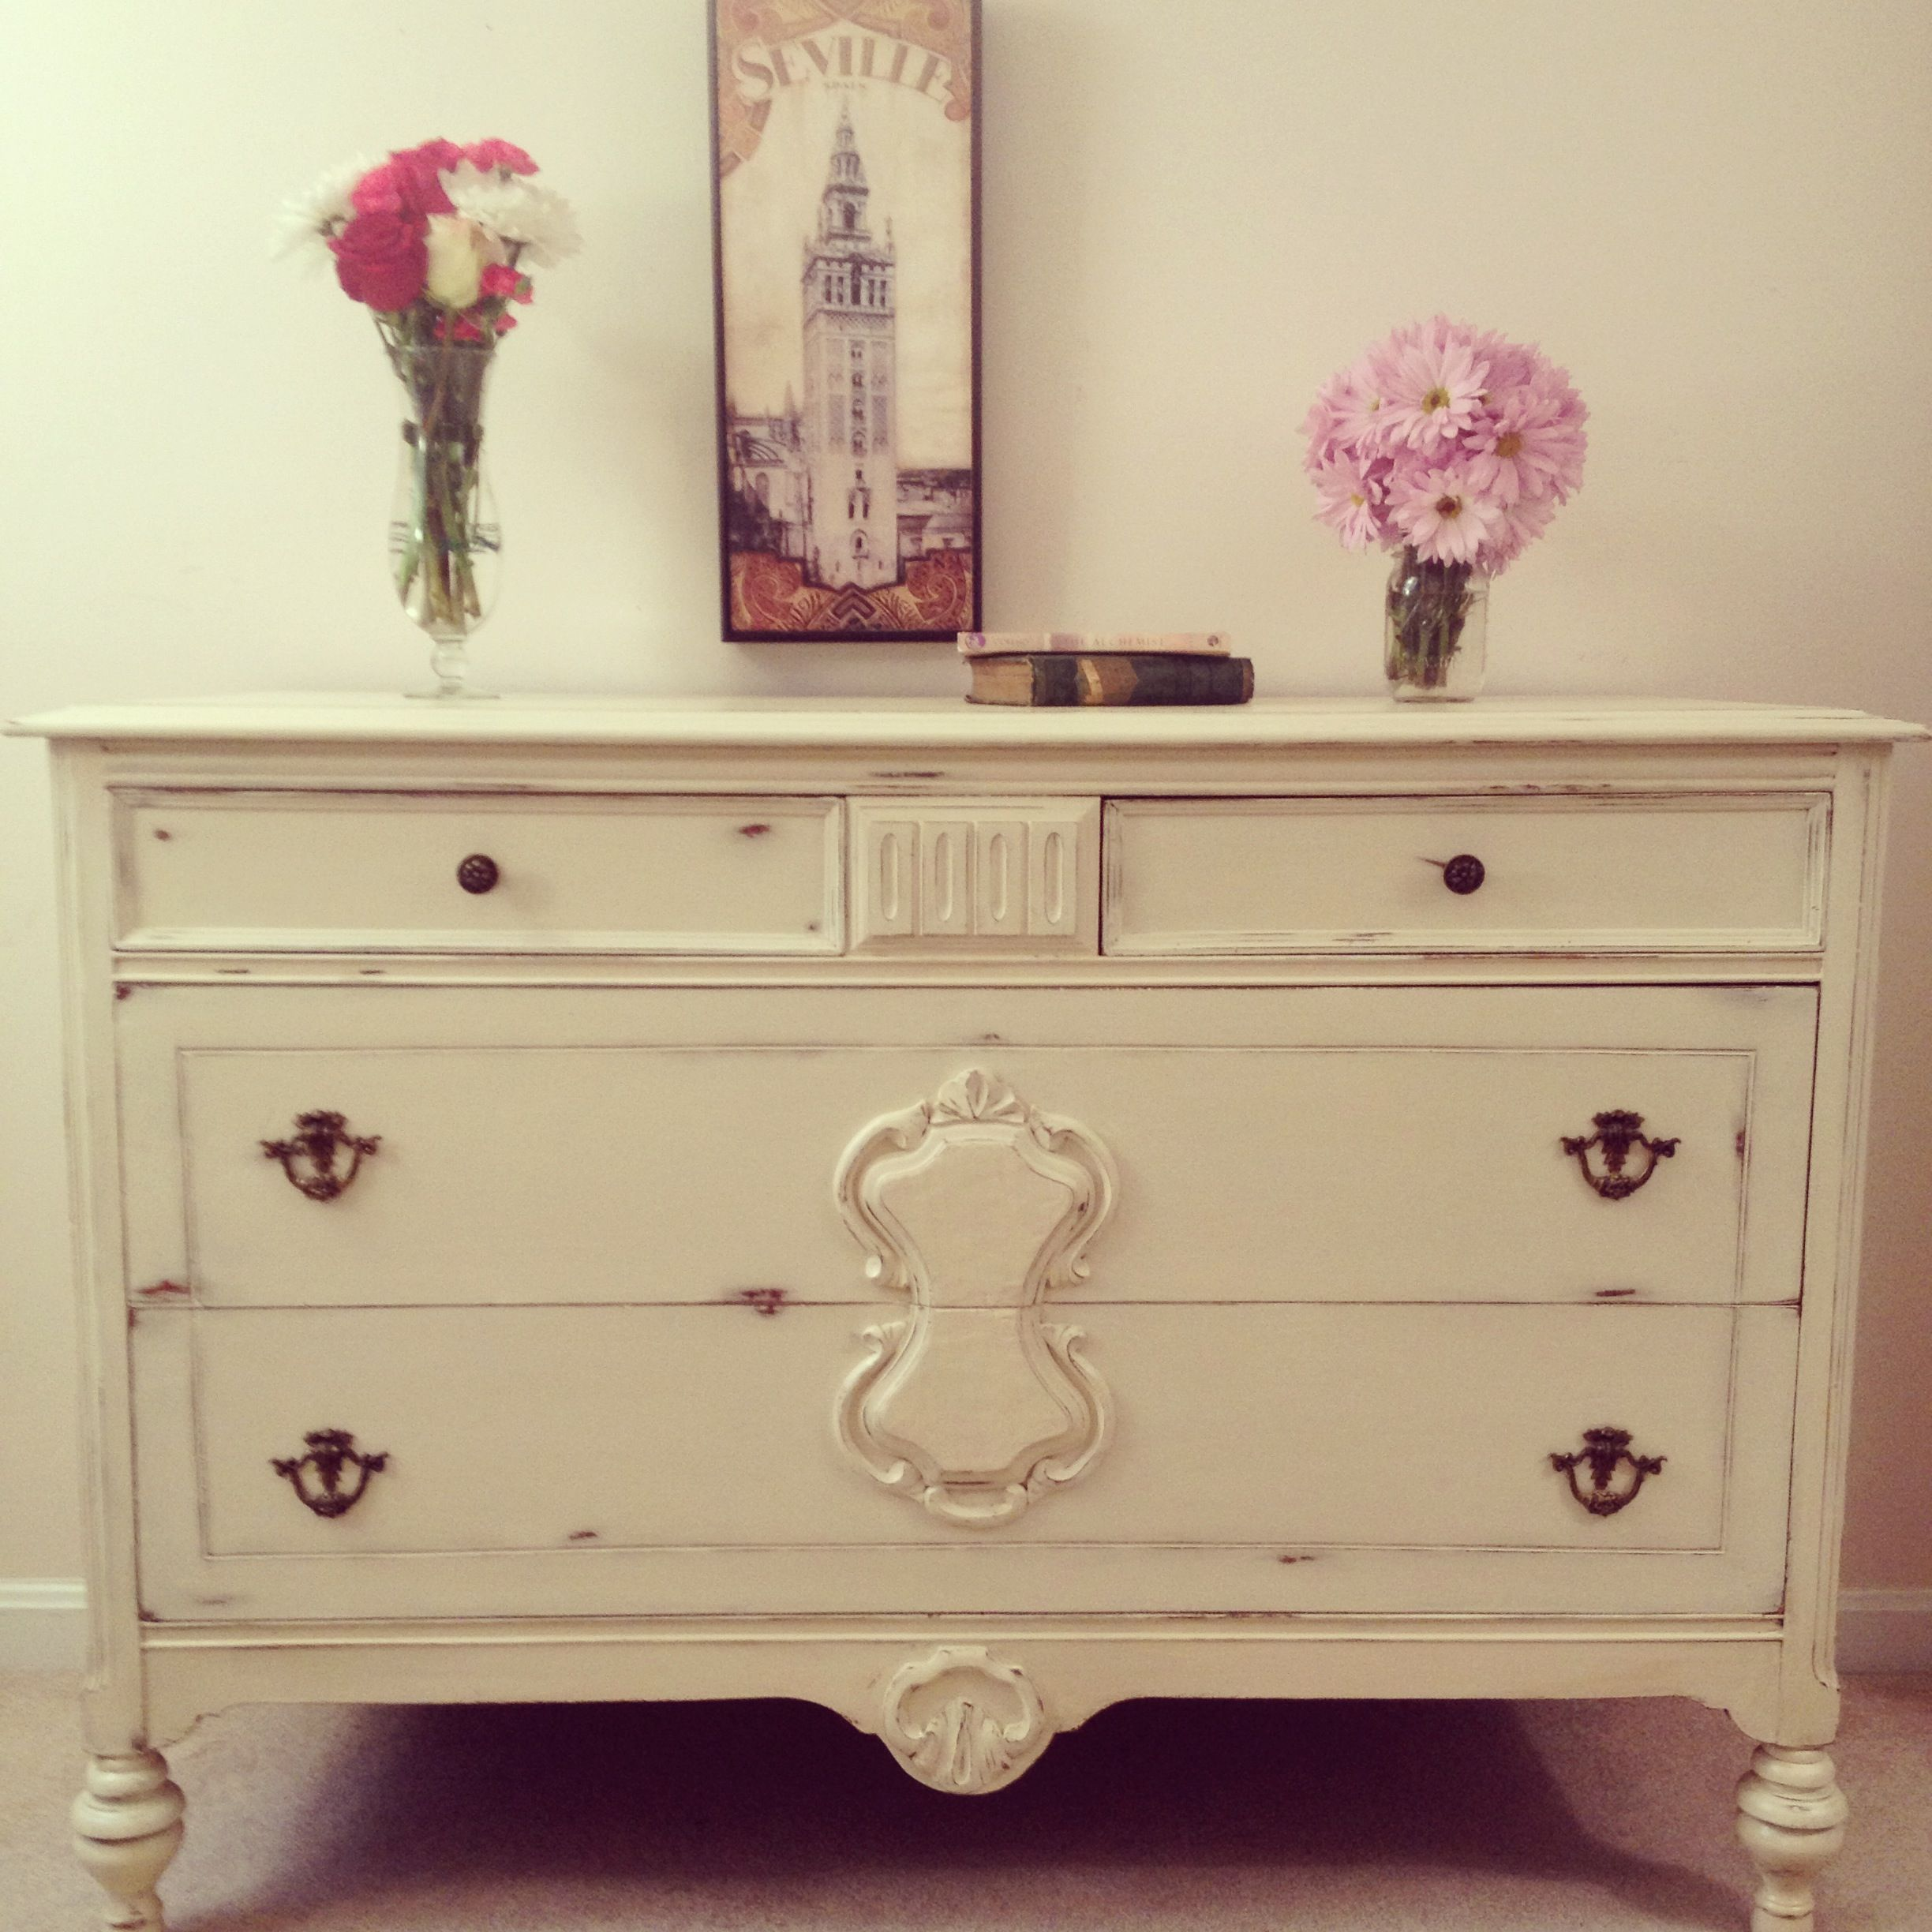 1920 s shabby chic dresser in Annie Sloan Chalk Paint Cream with